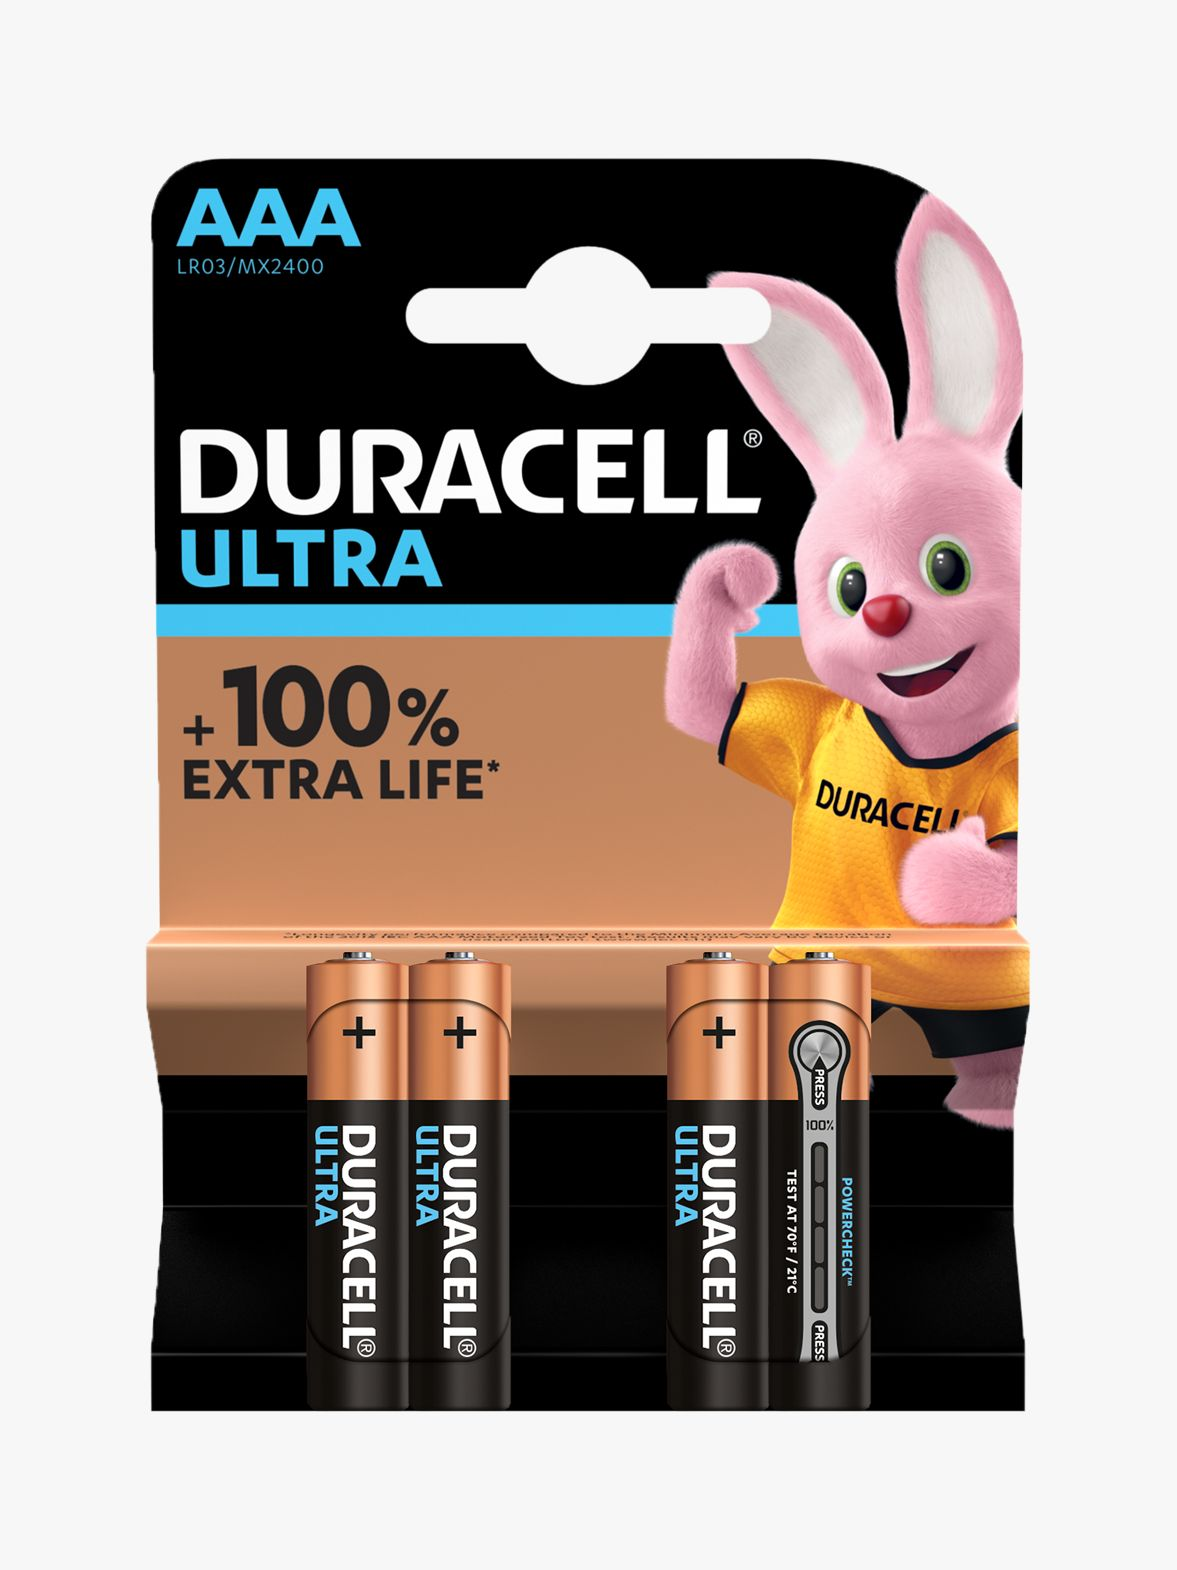 Duracell Duracell Ultra Power 1.5V Alkaline AAA Batteries, Pack of 4